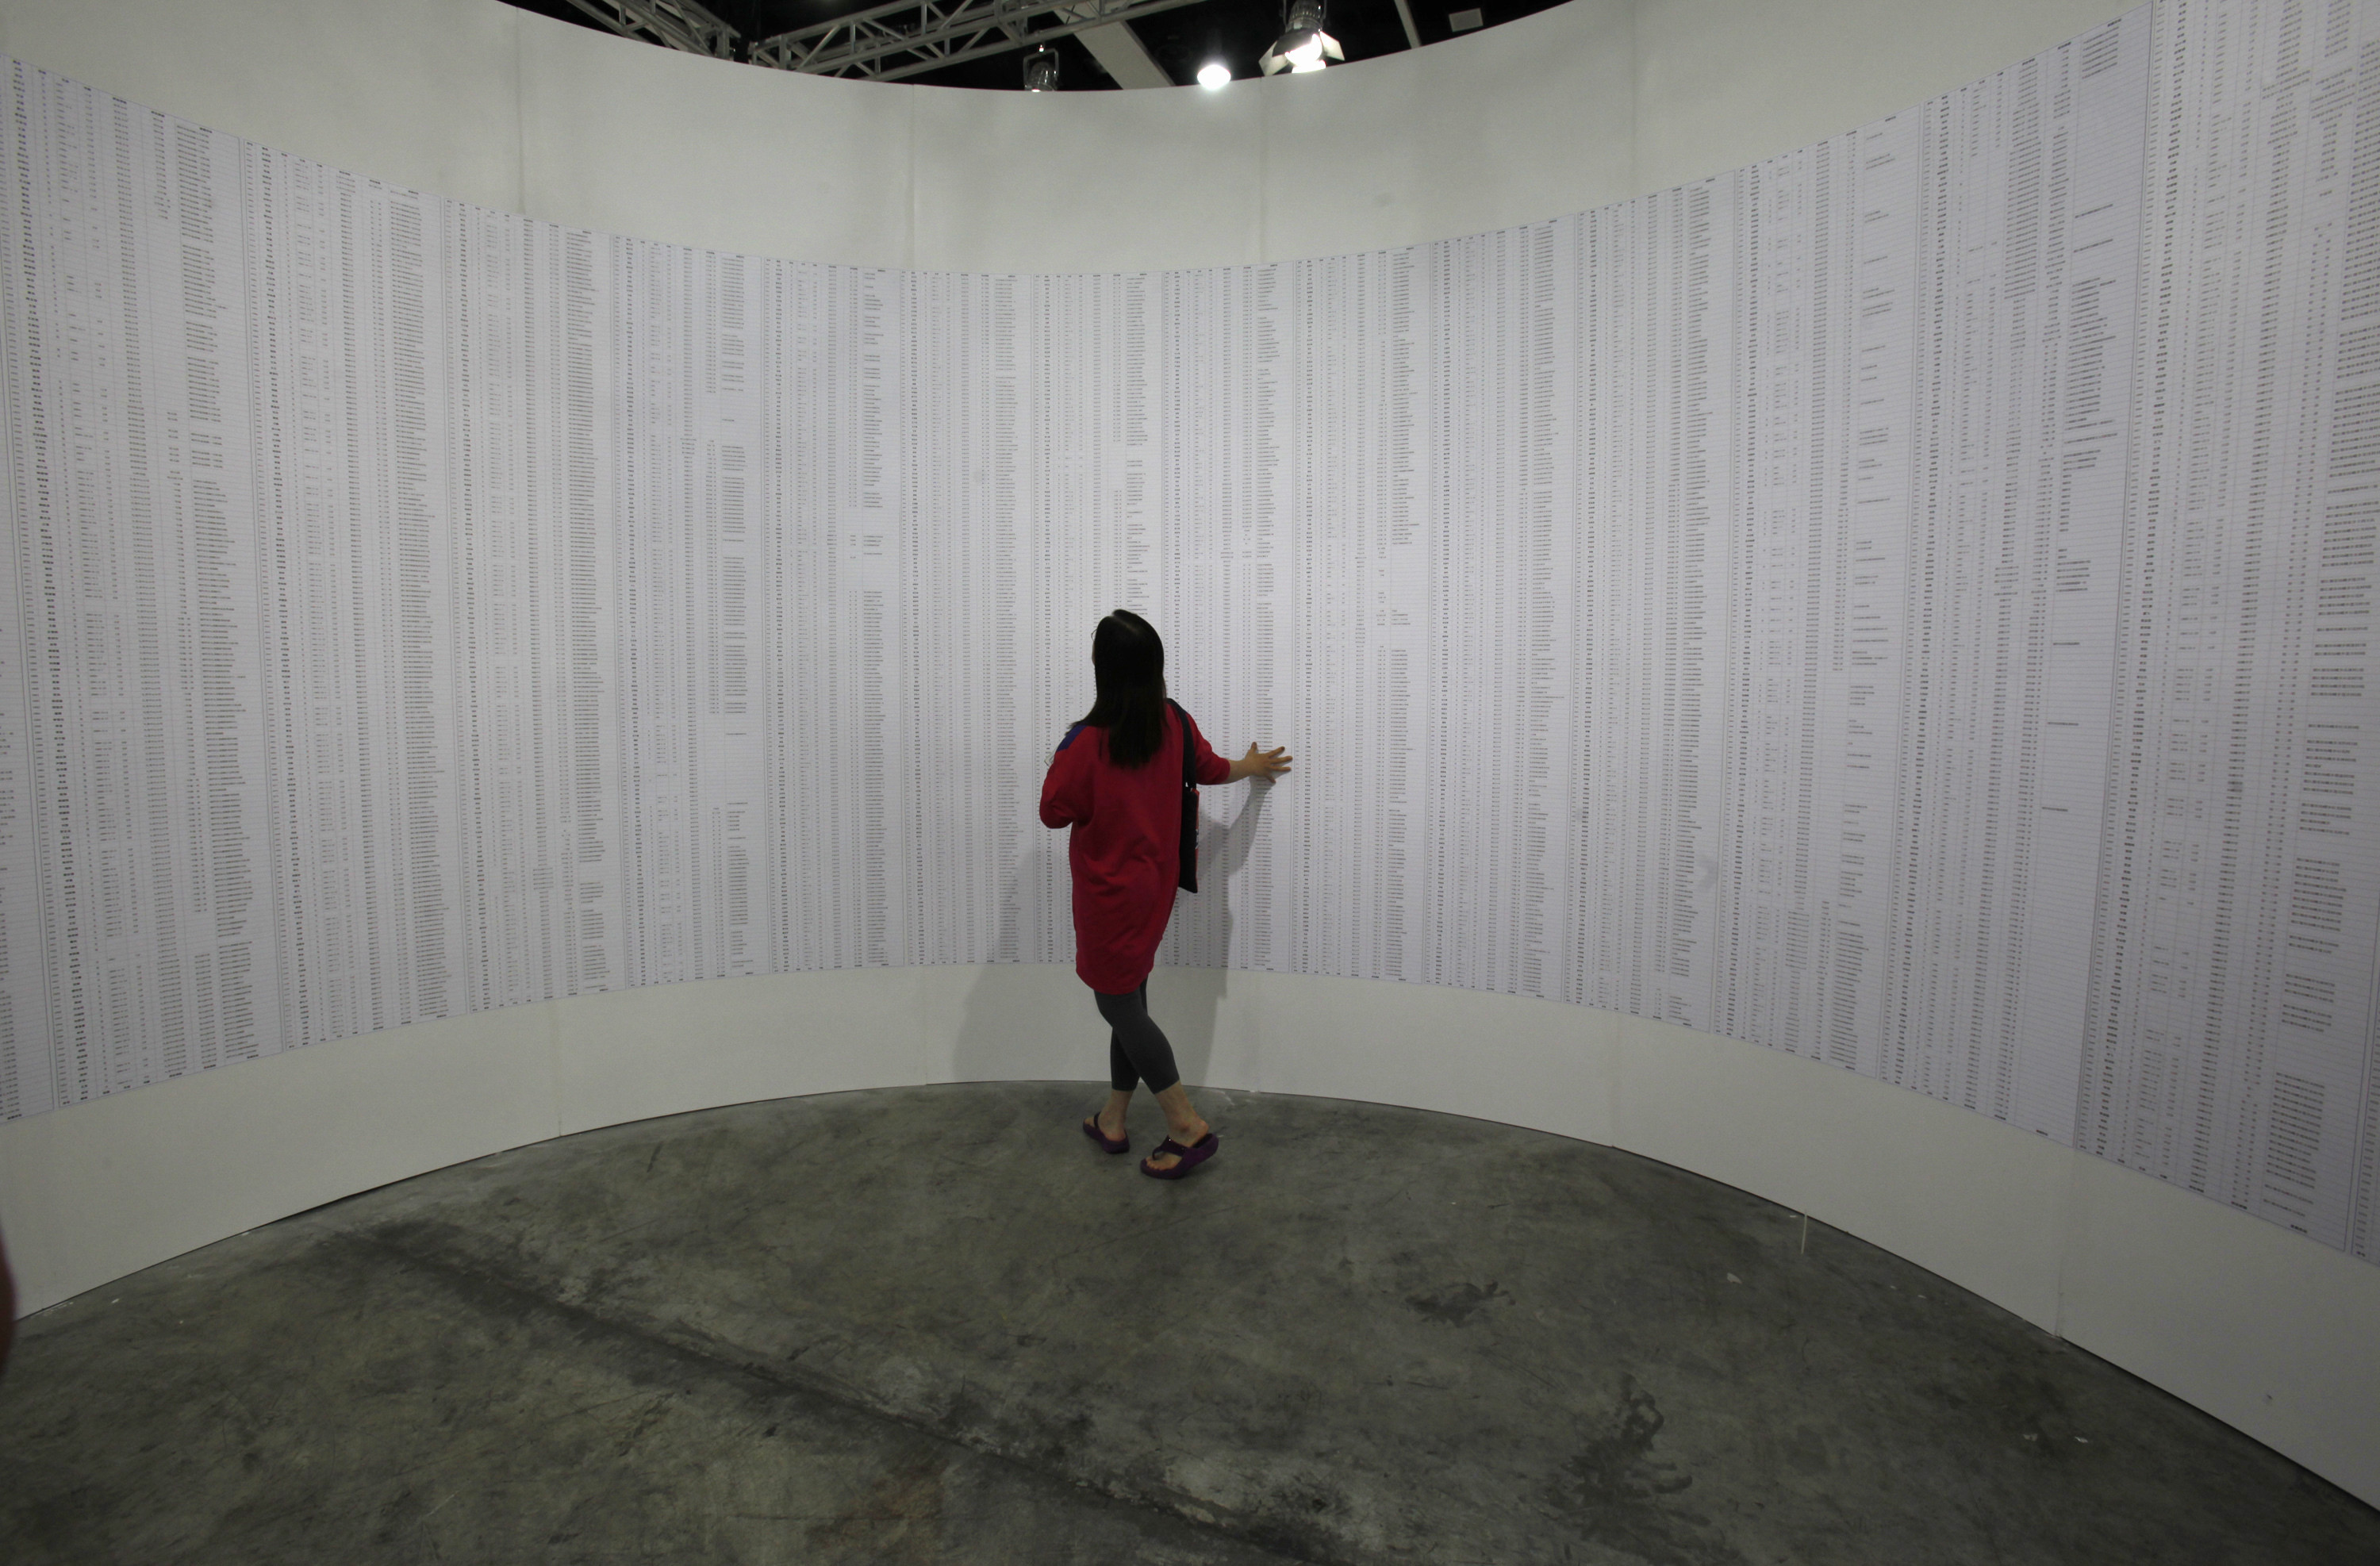 A visitor looks at the interior portion of an artwork titled